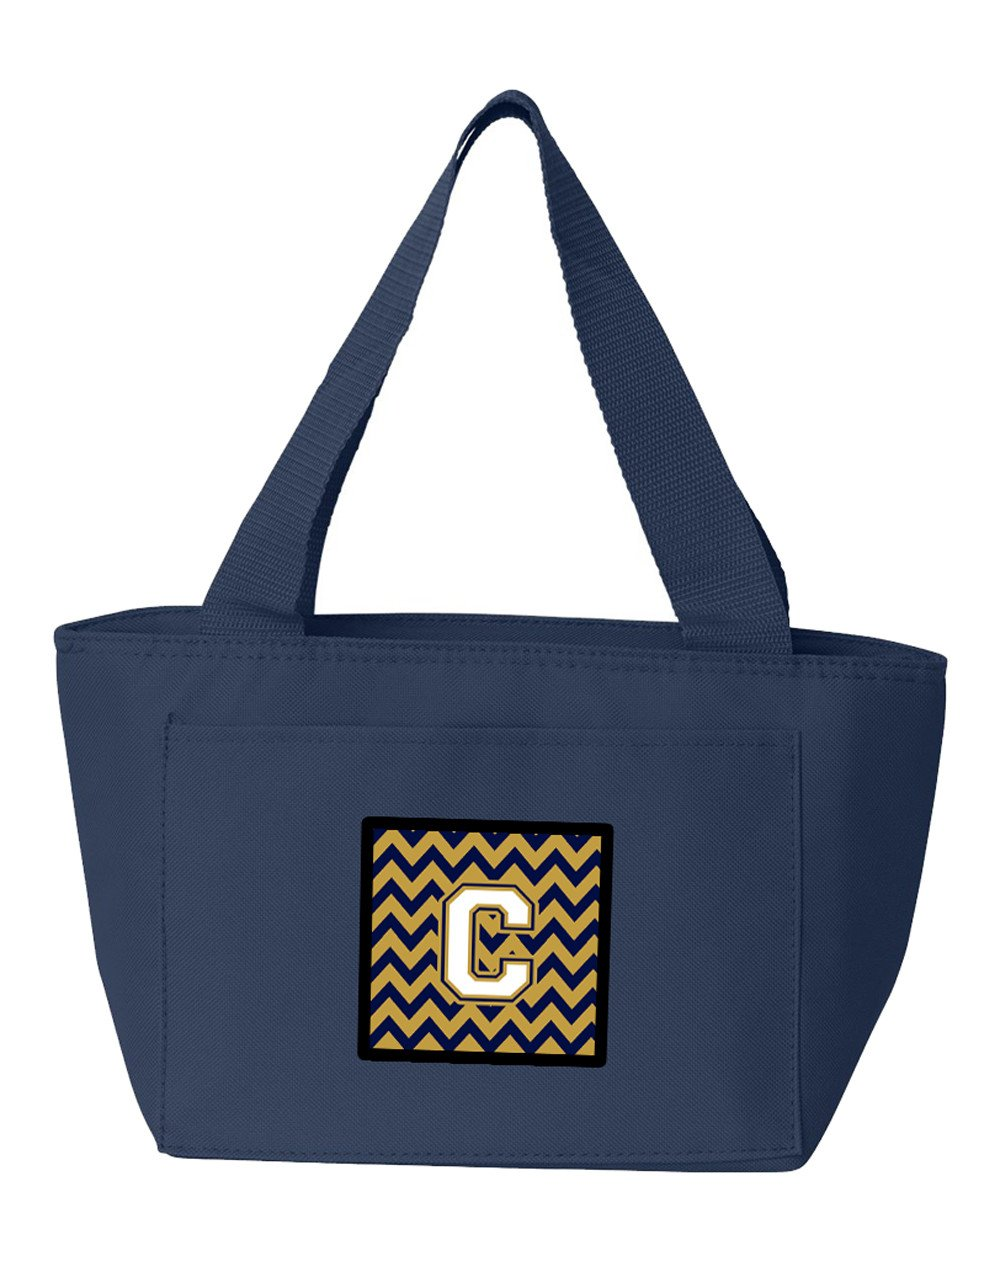 Letter C Chevron Navy Blue and Gold Lunch Bag CJ1057-CNA-8808 by Caroline's Treasures